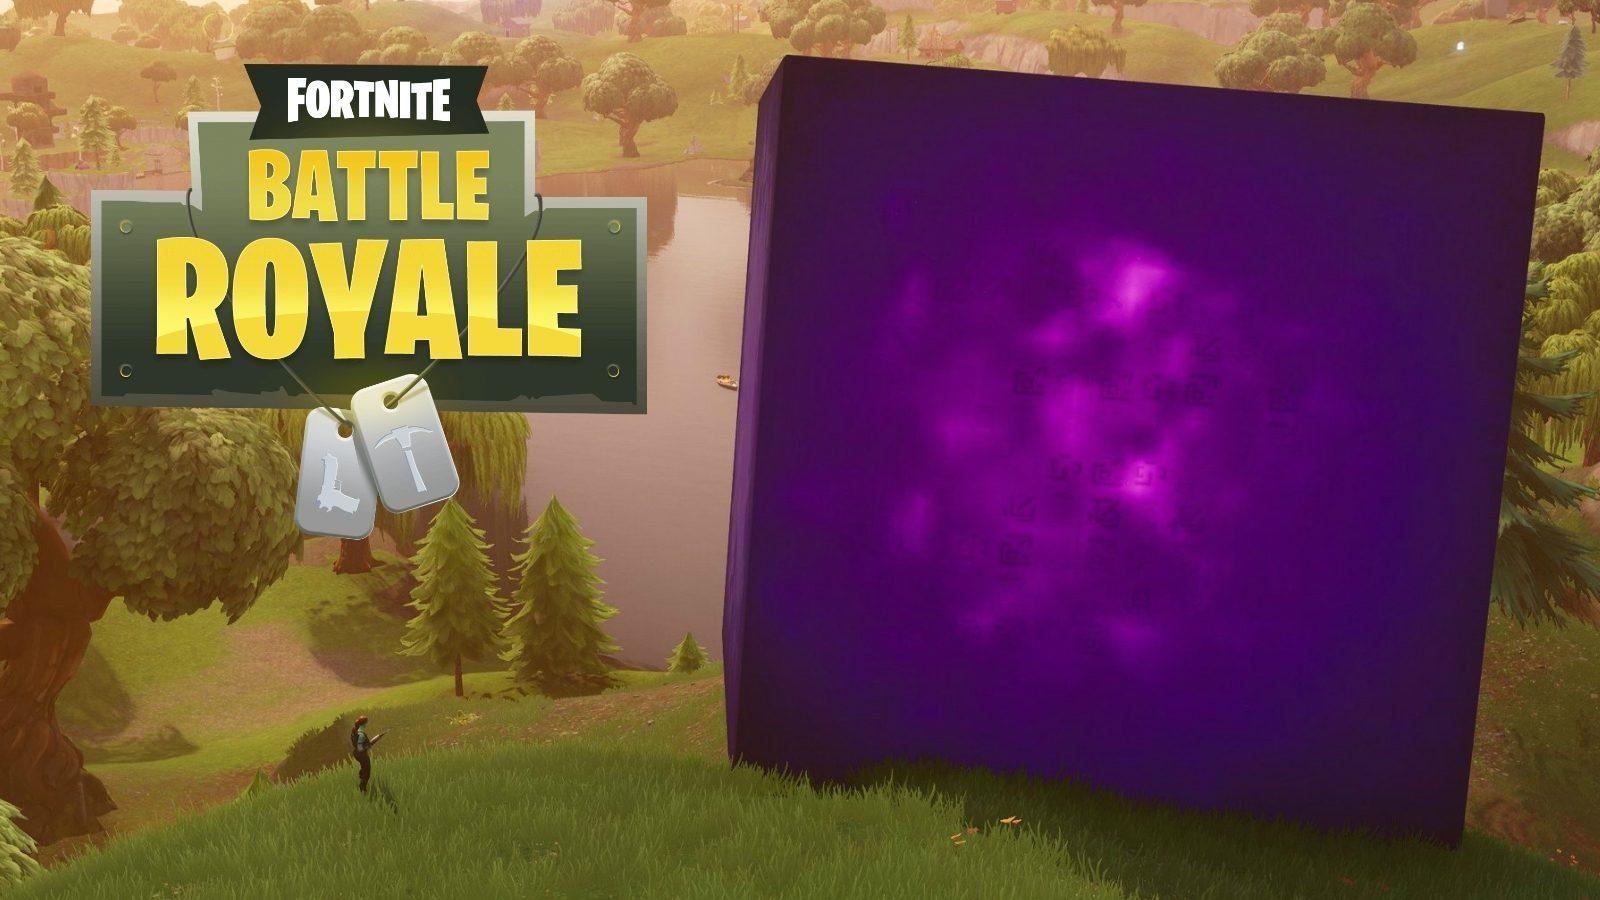 Fortnite players have spotted Kevin the Cube in